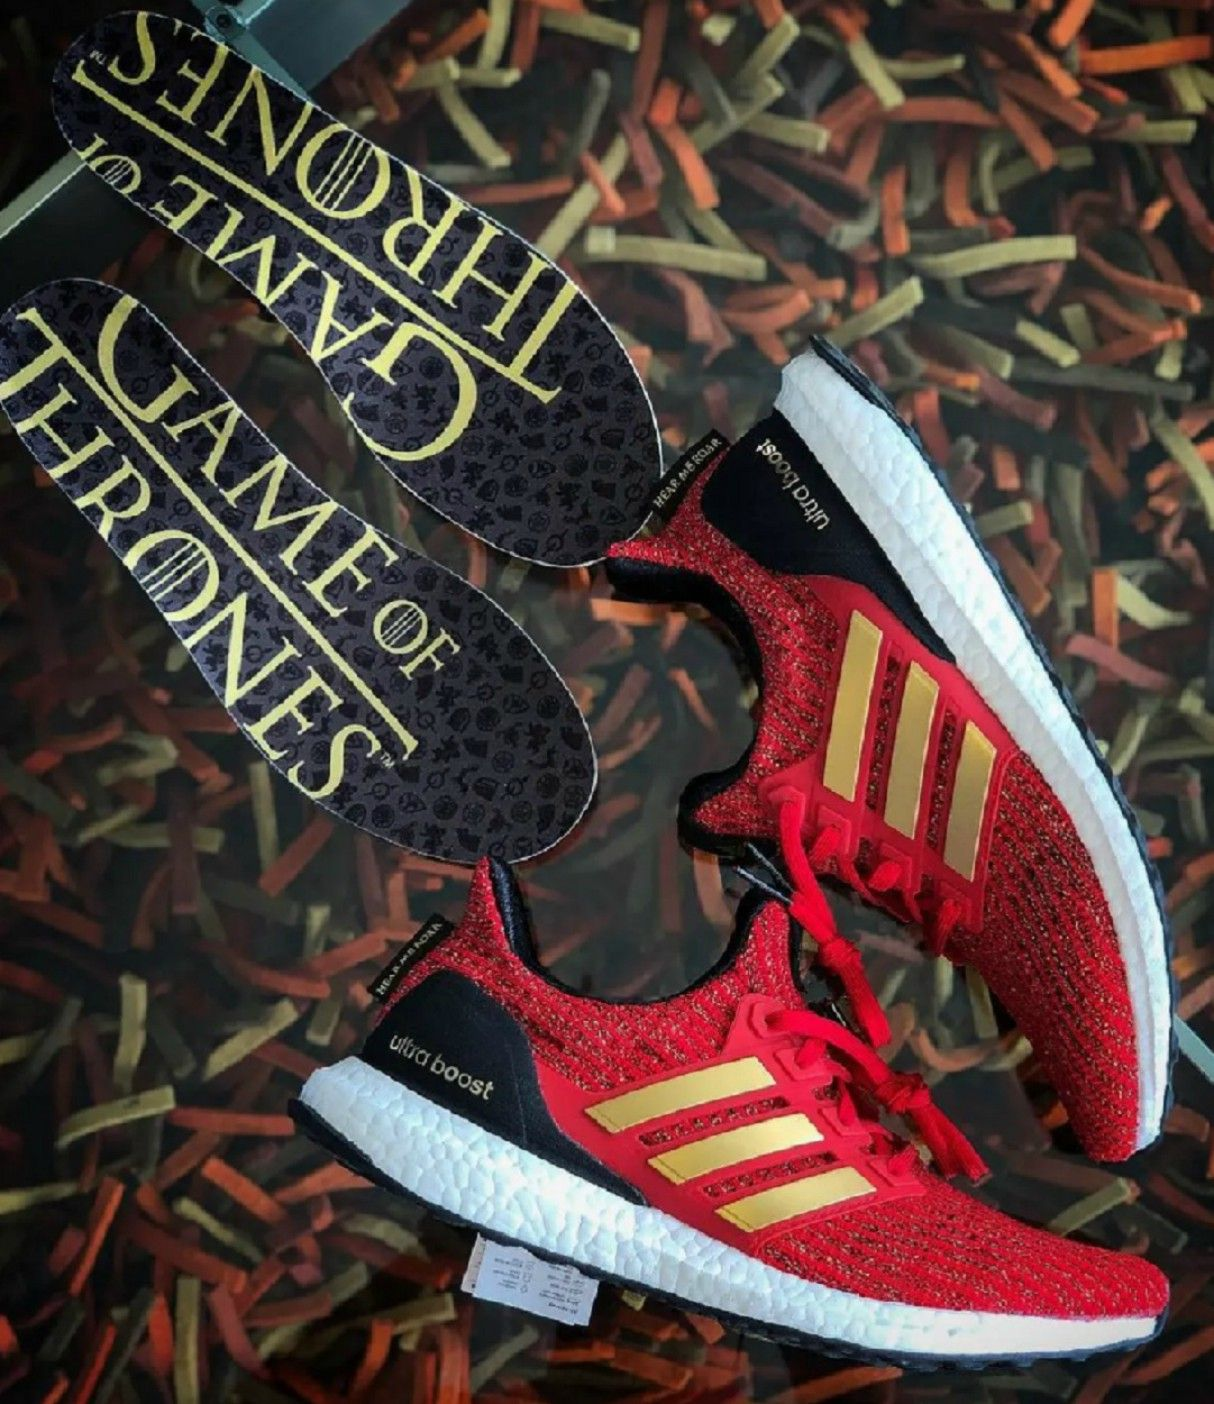 53c1275061a3e Take a Look at the Game of Thrones x adidas UltraBOOST Collection ...